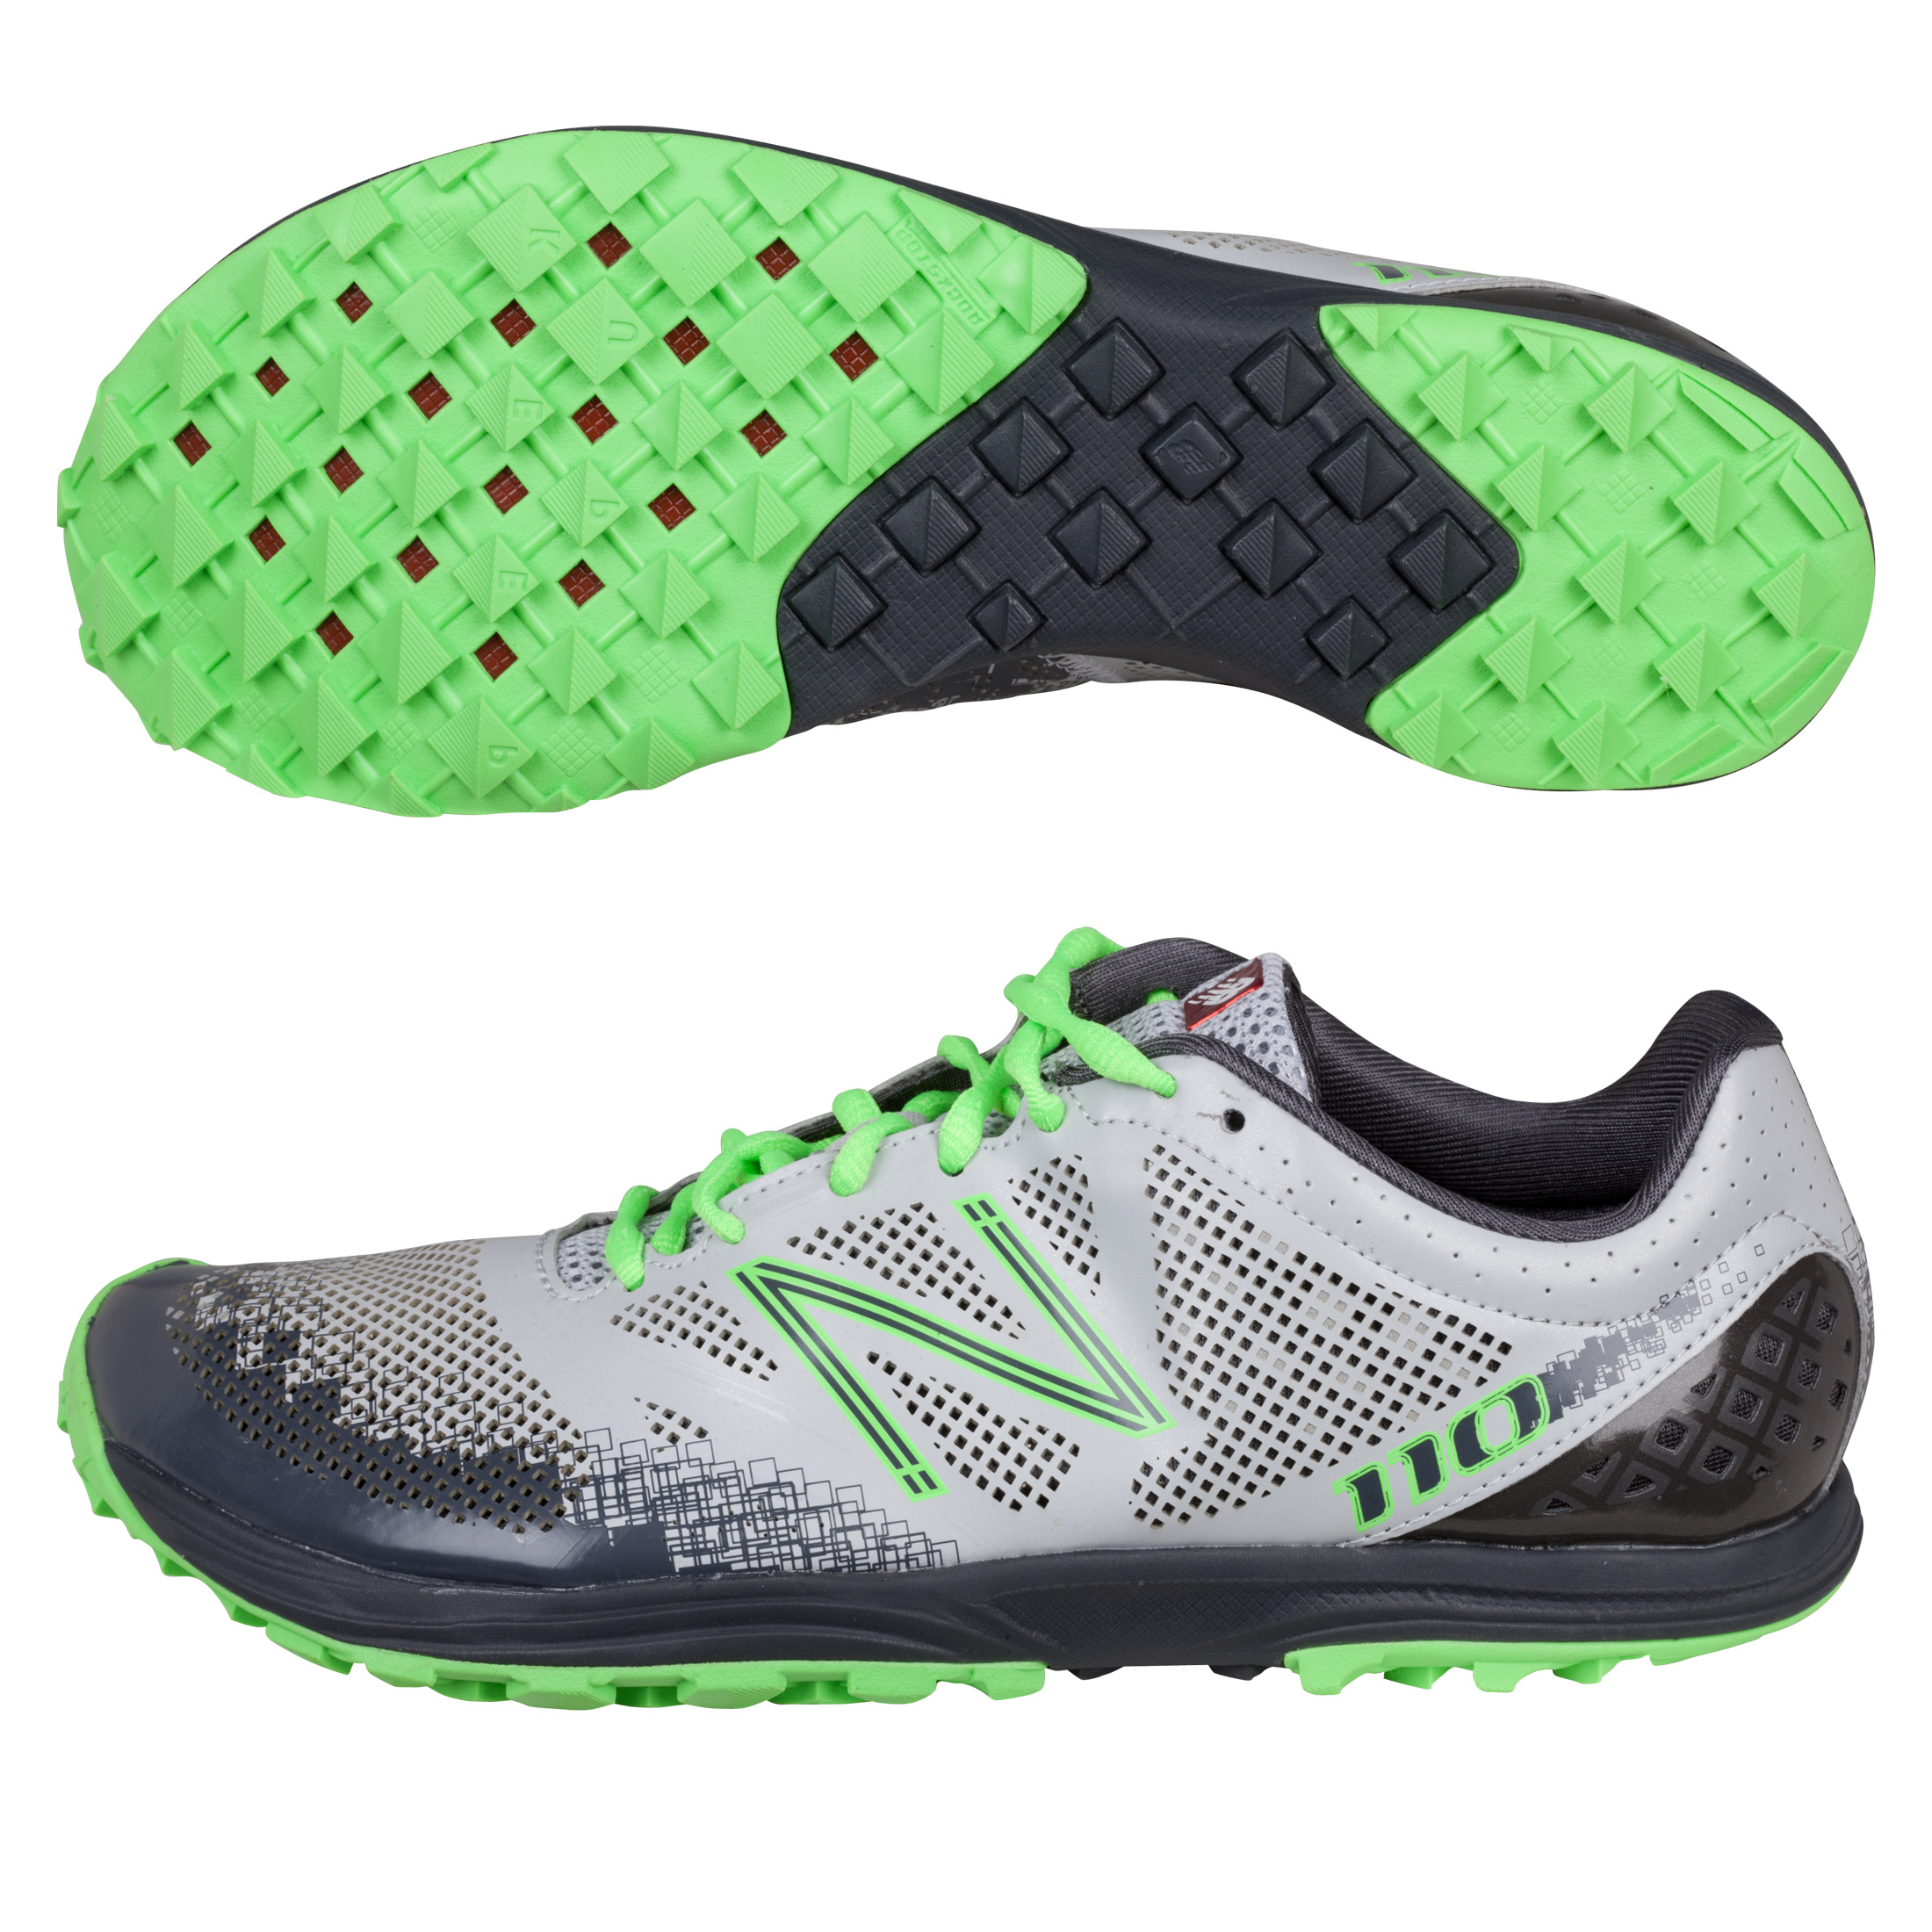 New Balance MT110v1 Trainer - Grey/Green